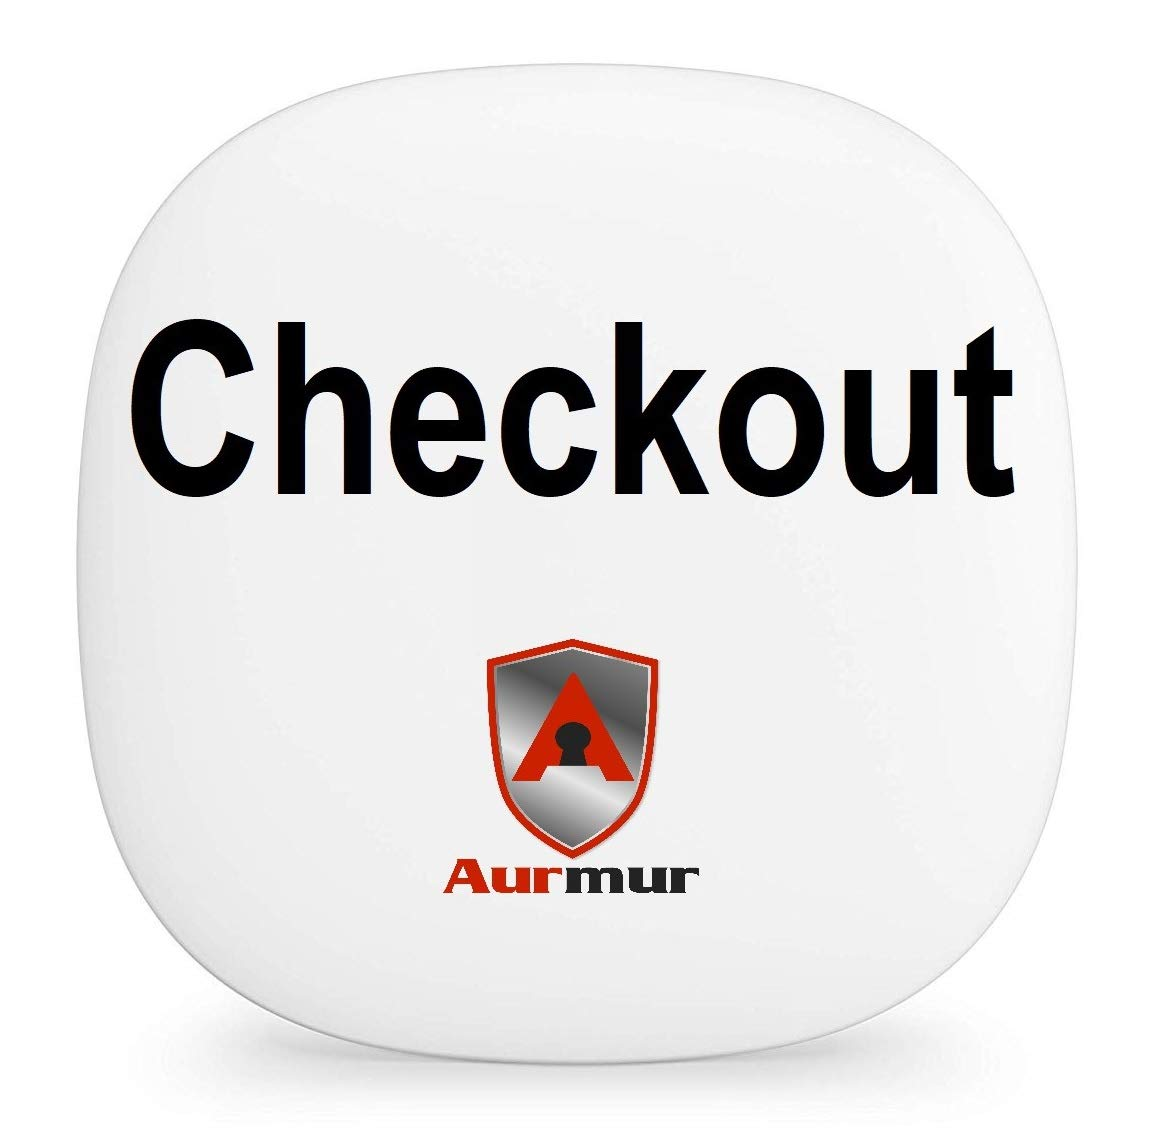 Checkout Button for Short-term Rental (Airbnb, VRBO, HomeAway, etc)